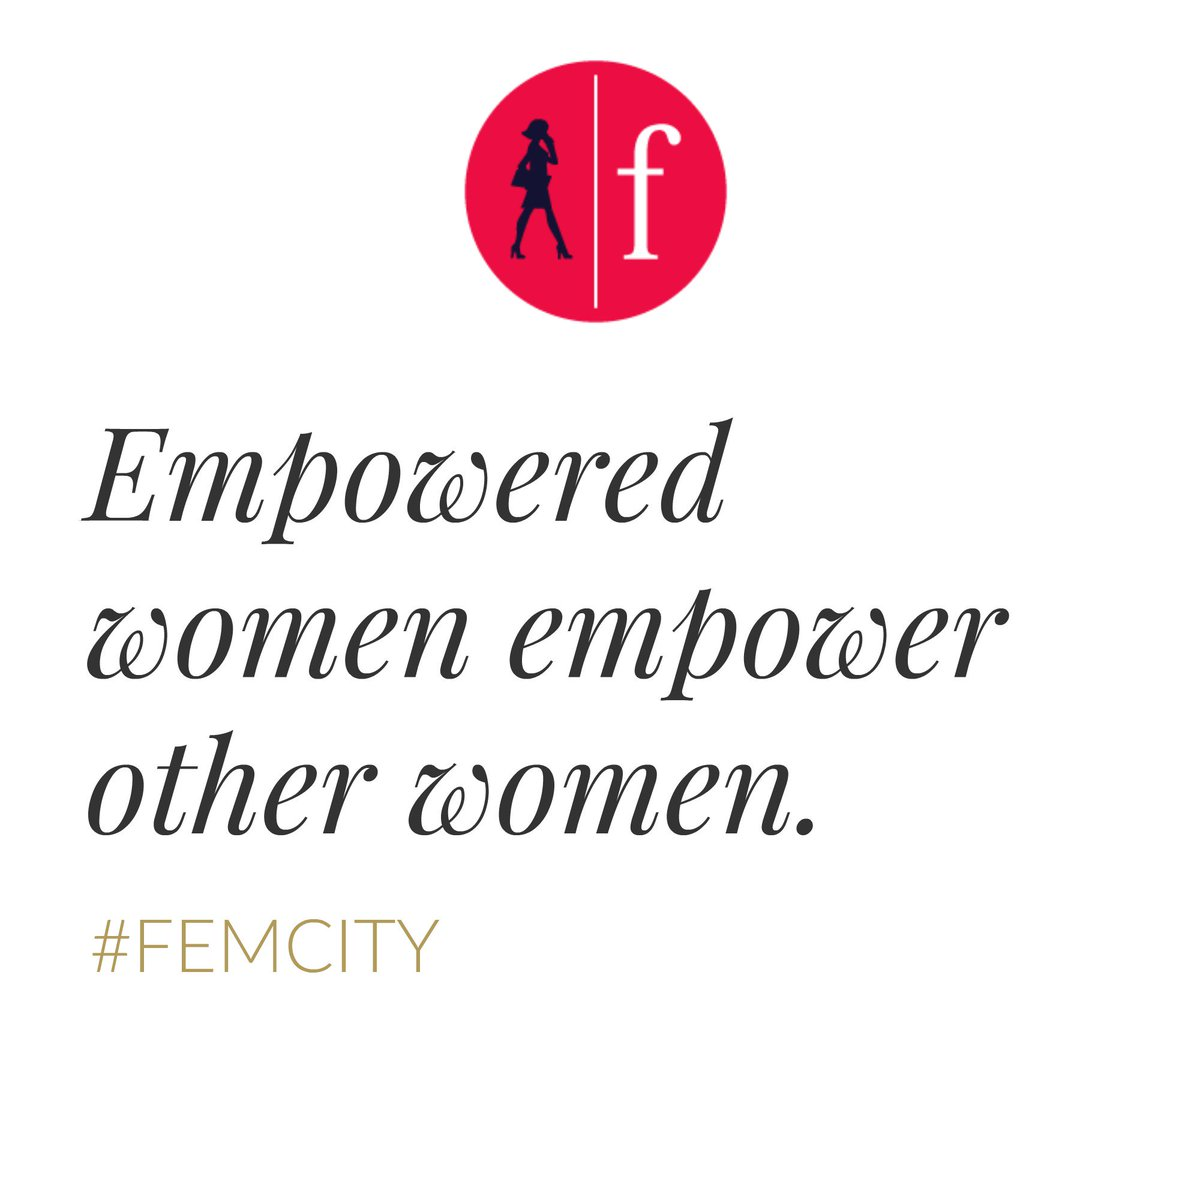 You have to set new goals every day !!! #iamfemcity #womenempowerwomen https://t.co/sER616Yqb0